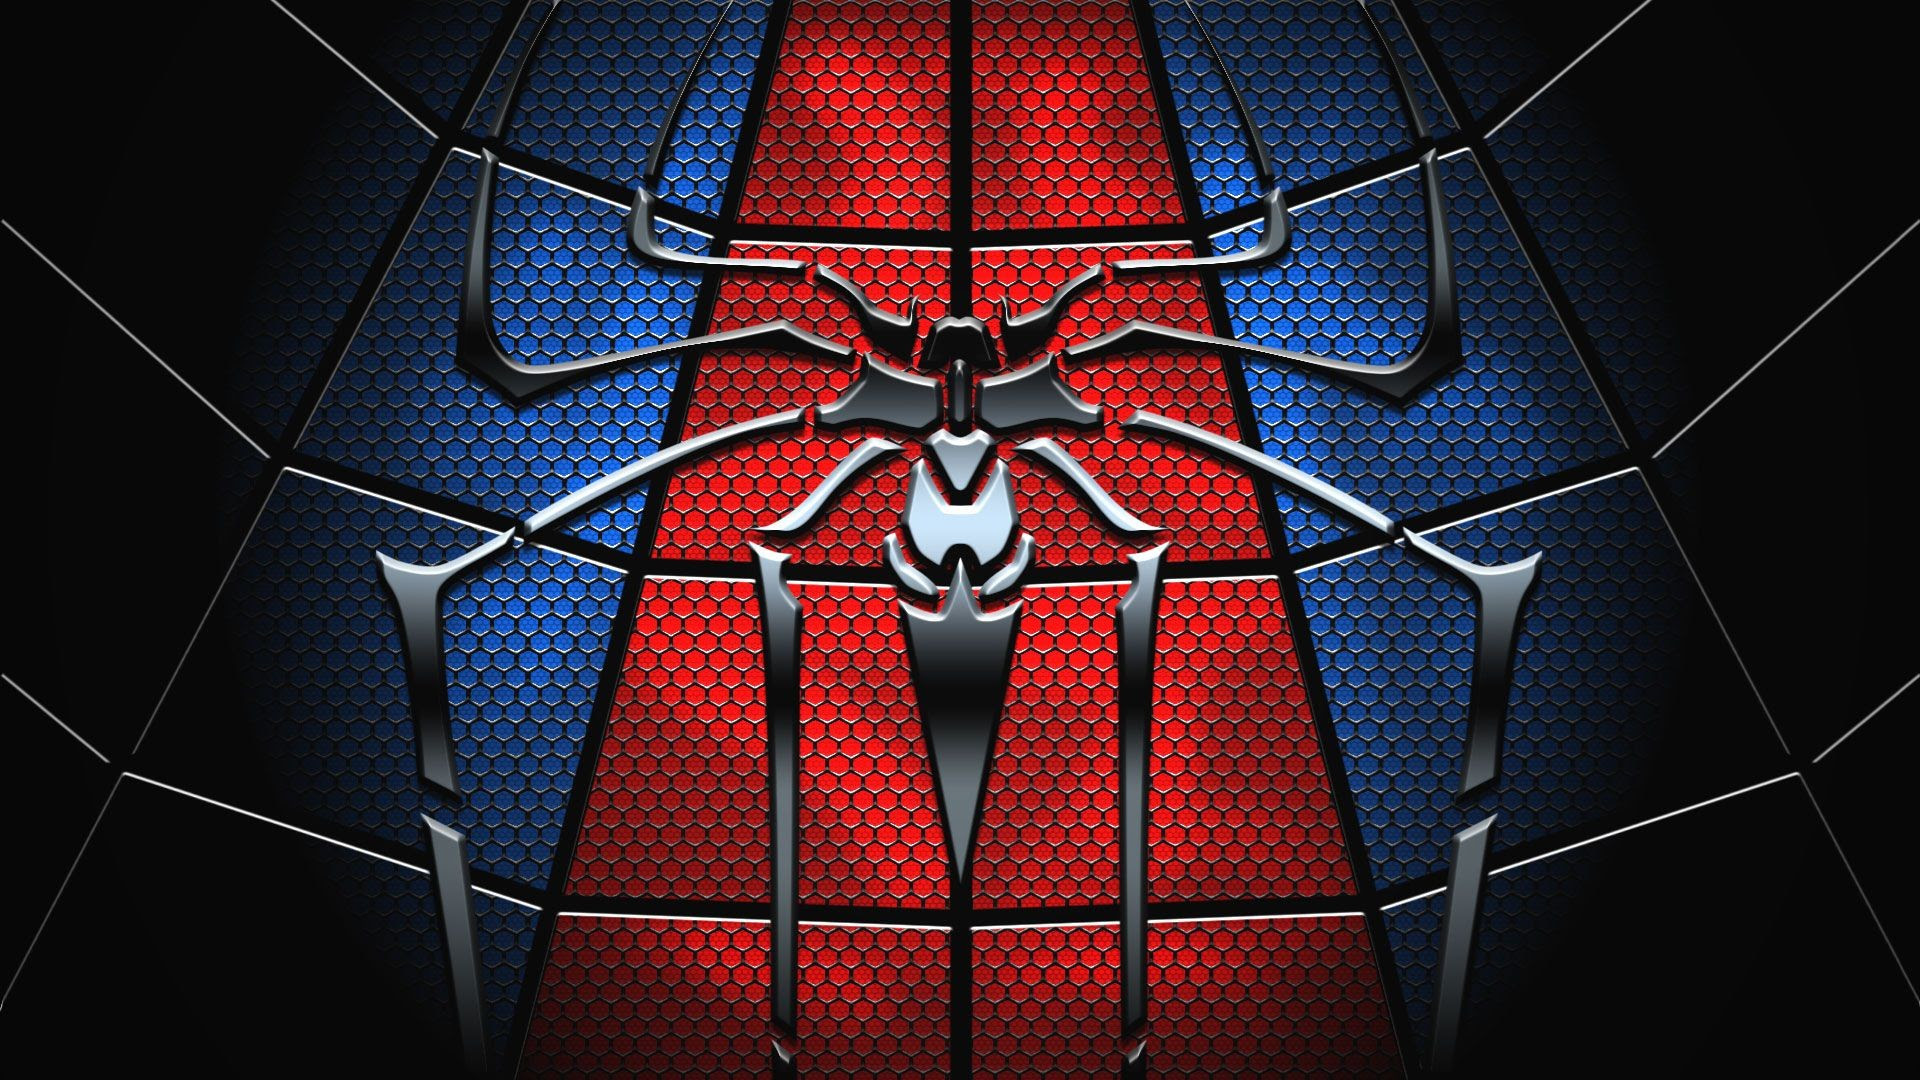 Download 80 Koleksi Wallpaper Bergerak Spiderman Terbaik